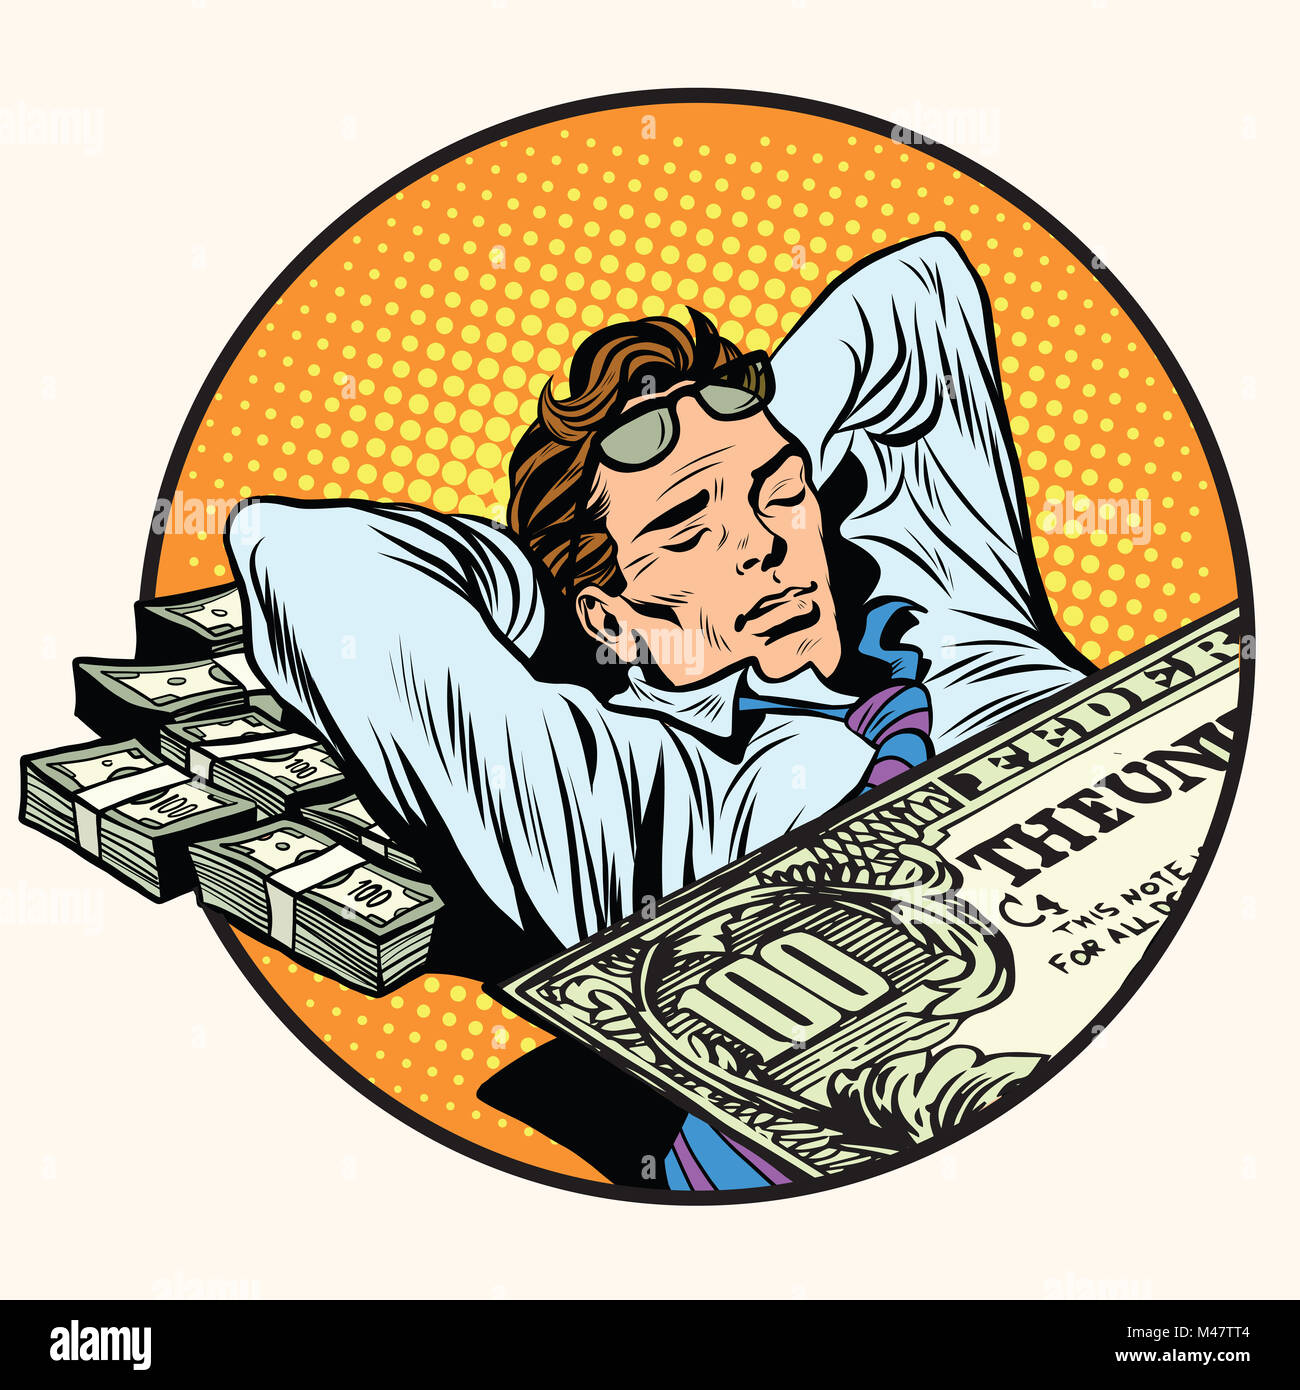 Dreams of riches business concept - Stock Image